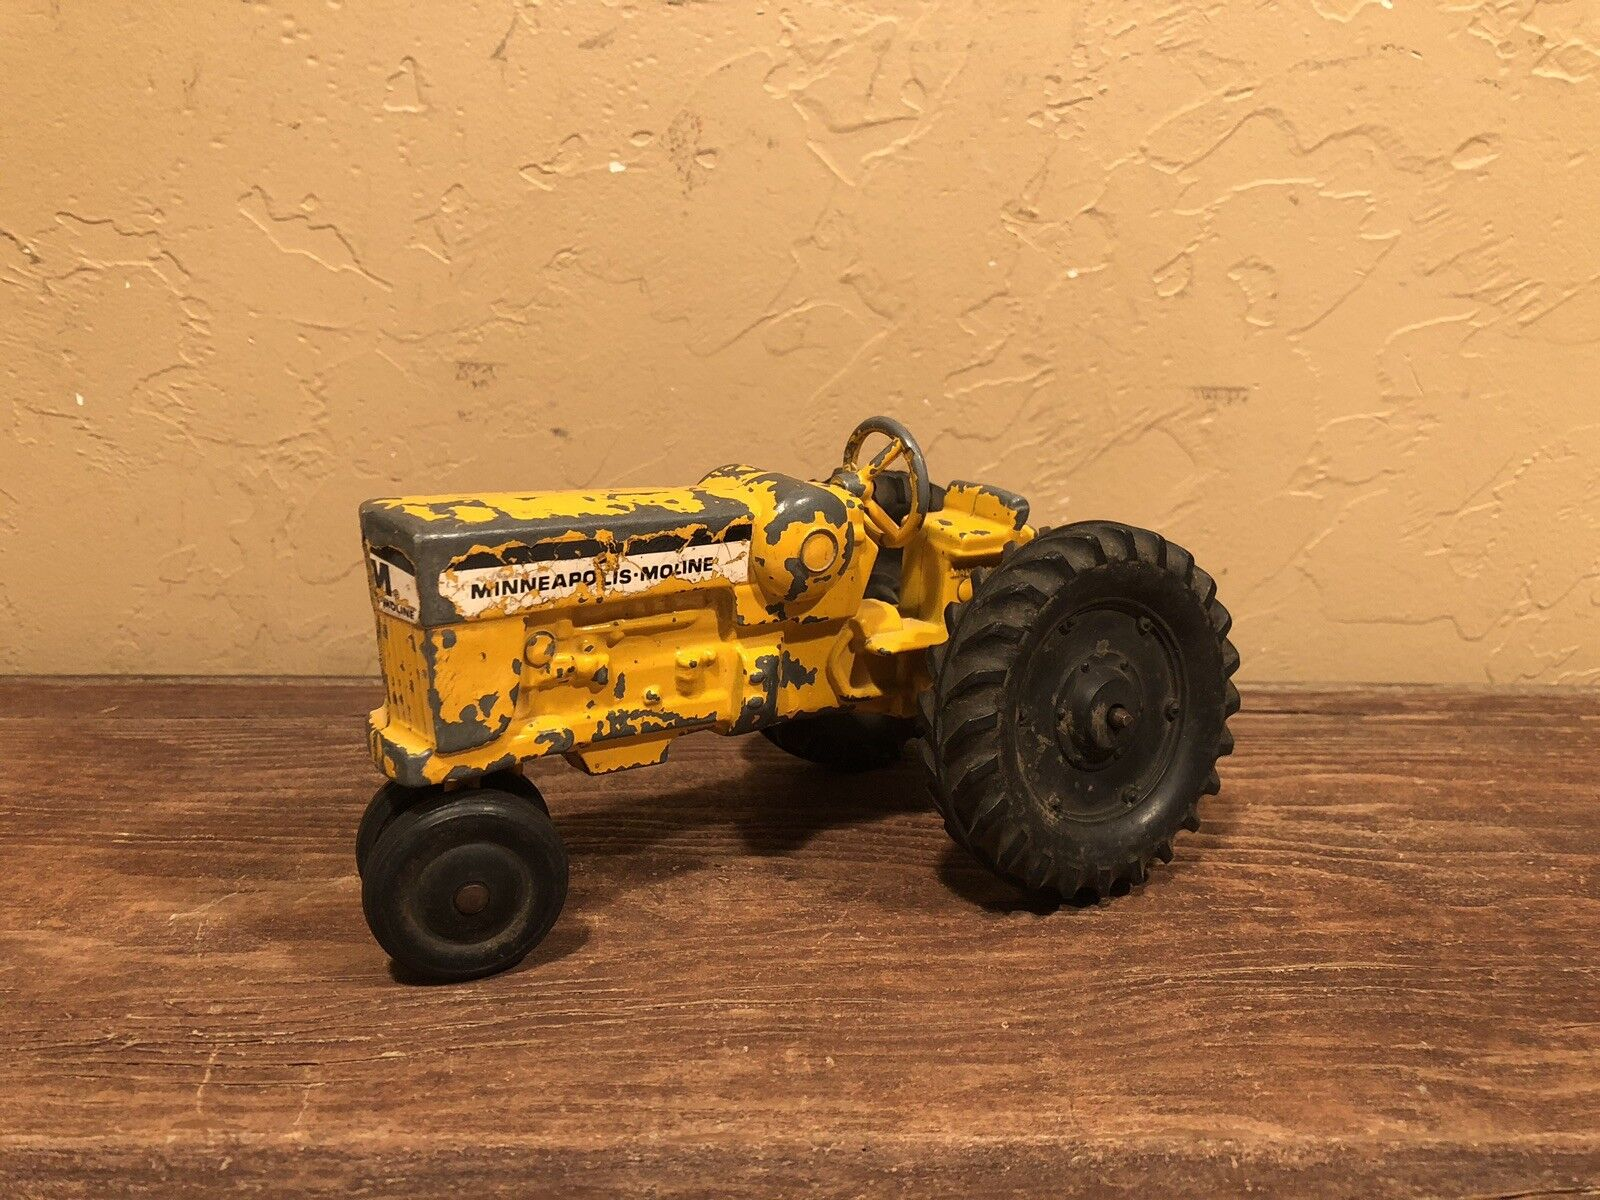 Vintage Ertl Diecast 1 24 Minneapolis Moline Lp Tractor